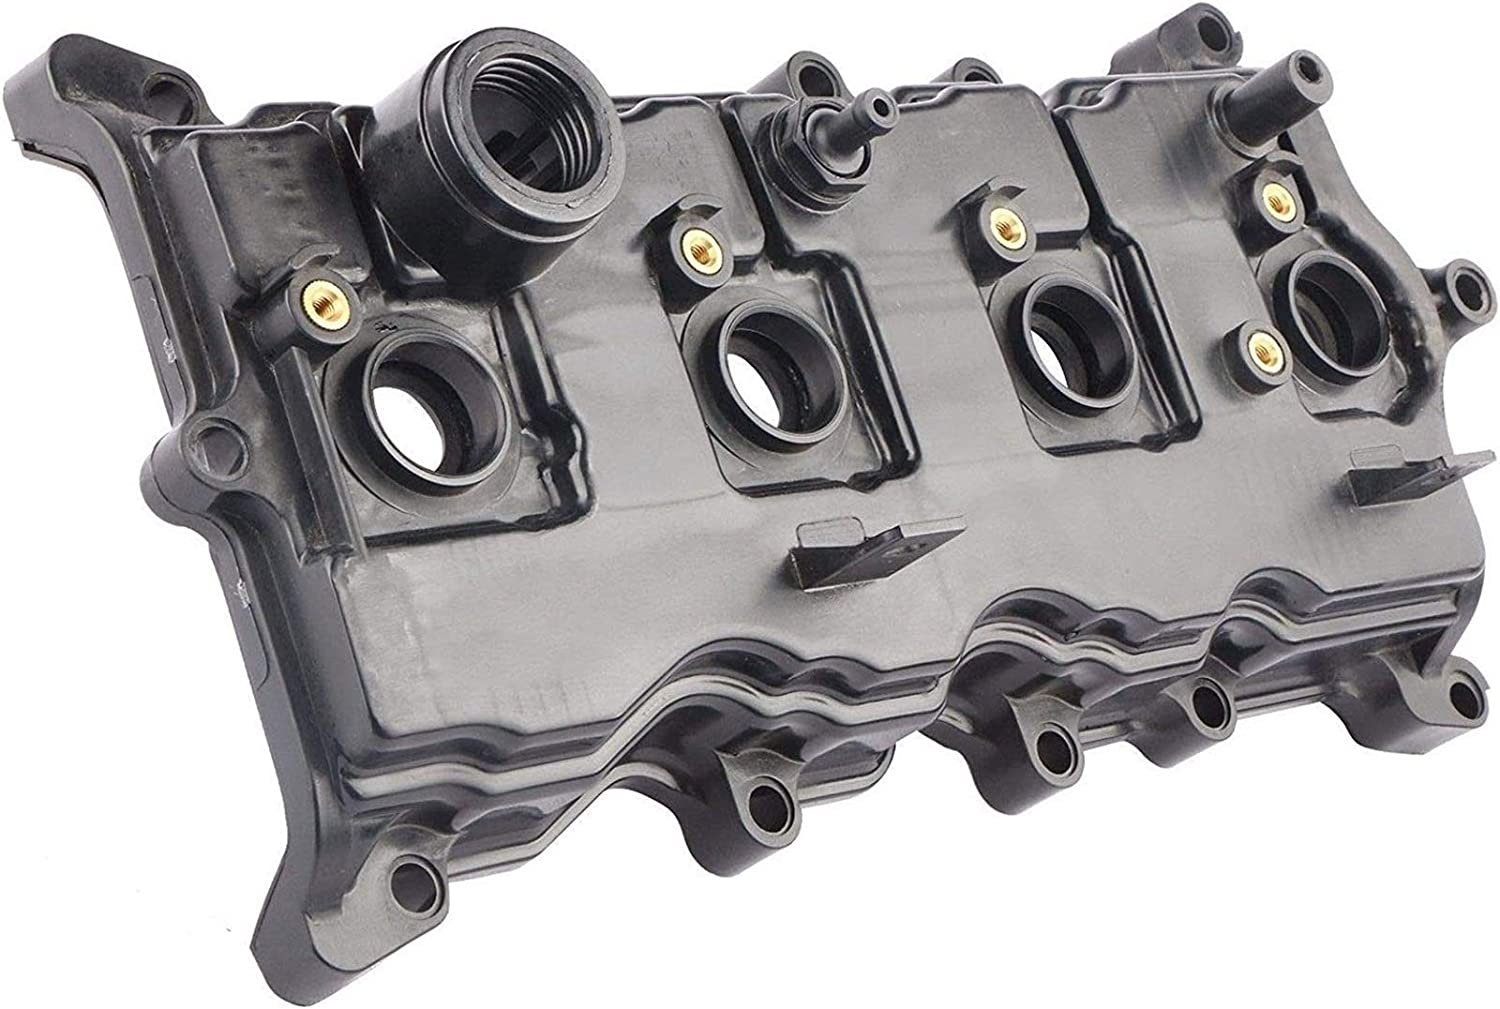 Valve Covers ZHENDAUS Engine Valve Cover With Gasket For 07-13 ...